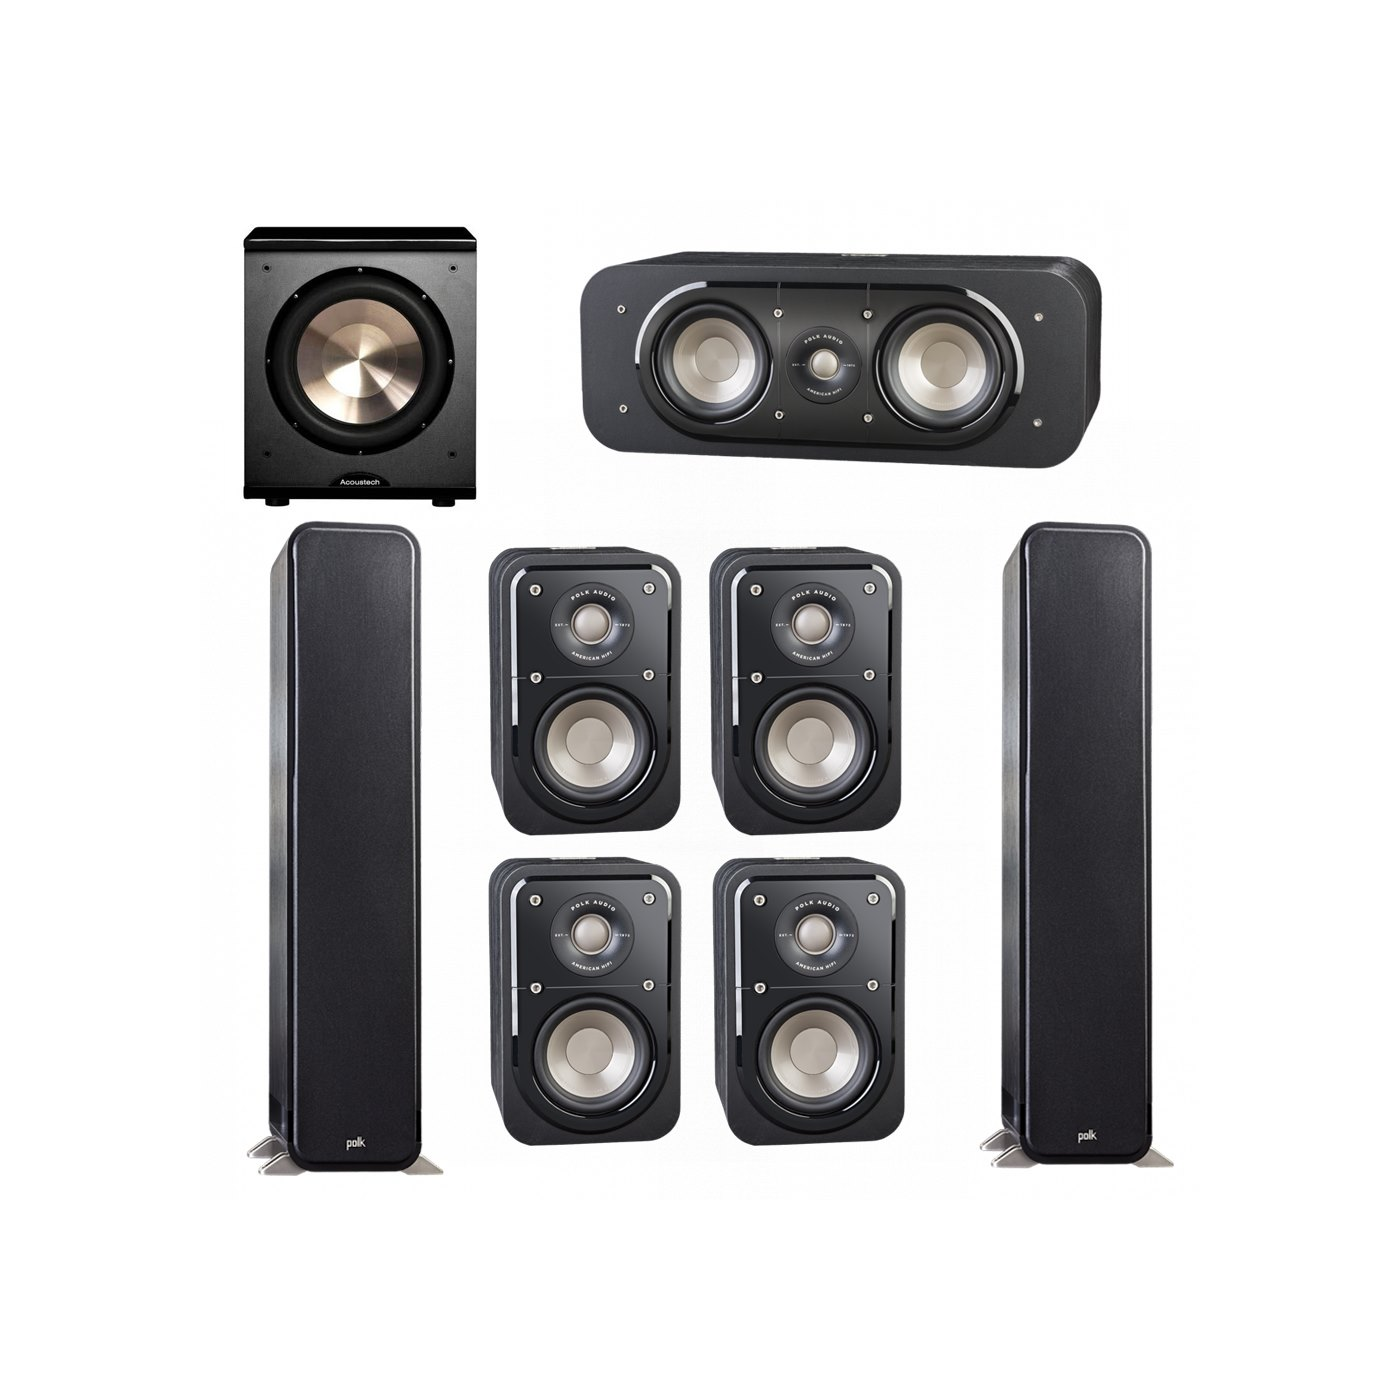 Polk Audio Signature 7.1 System with 2 S55 Tower Speaker, 1 Polk S30 Center Speaker, 4 Polk S10 Bookshelf Speaker, 1 BIC/Acoustech Platinum Series PL-200 Subwoofer